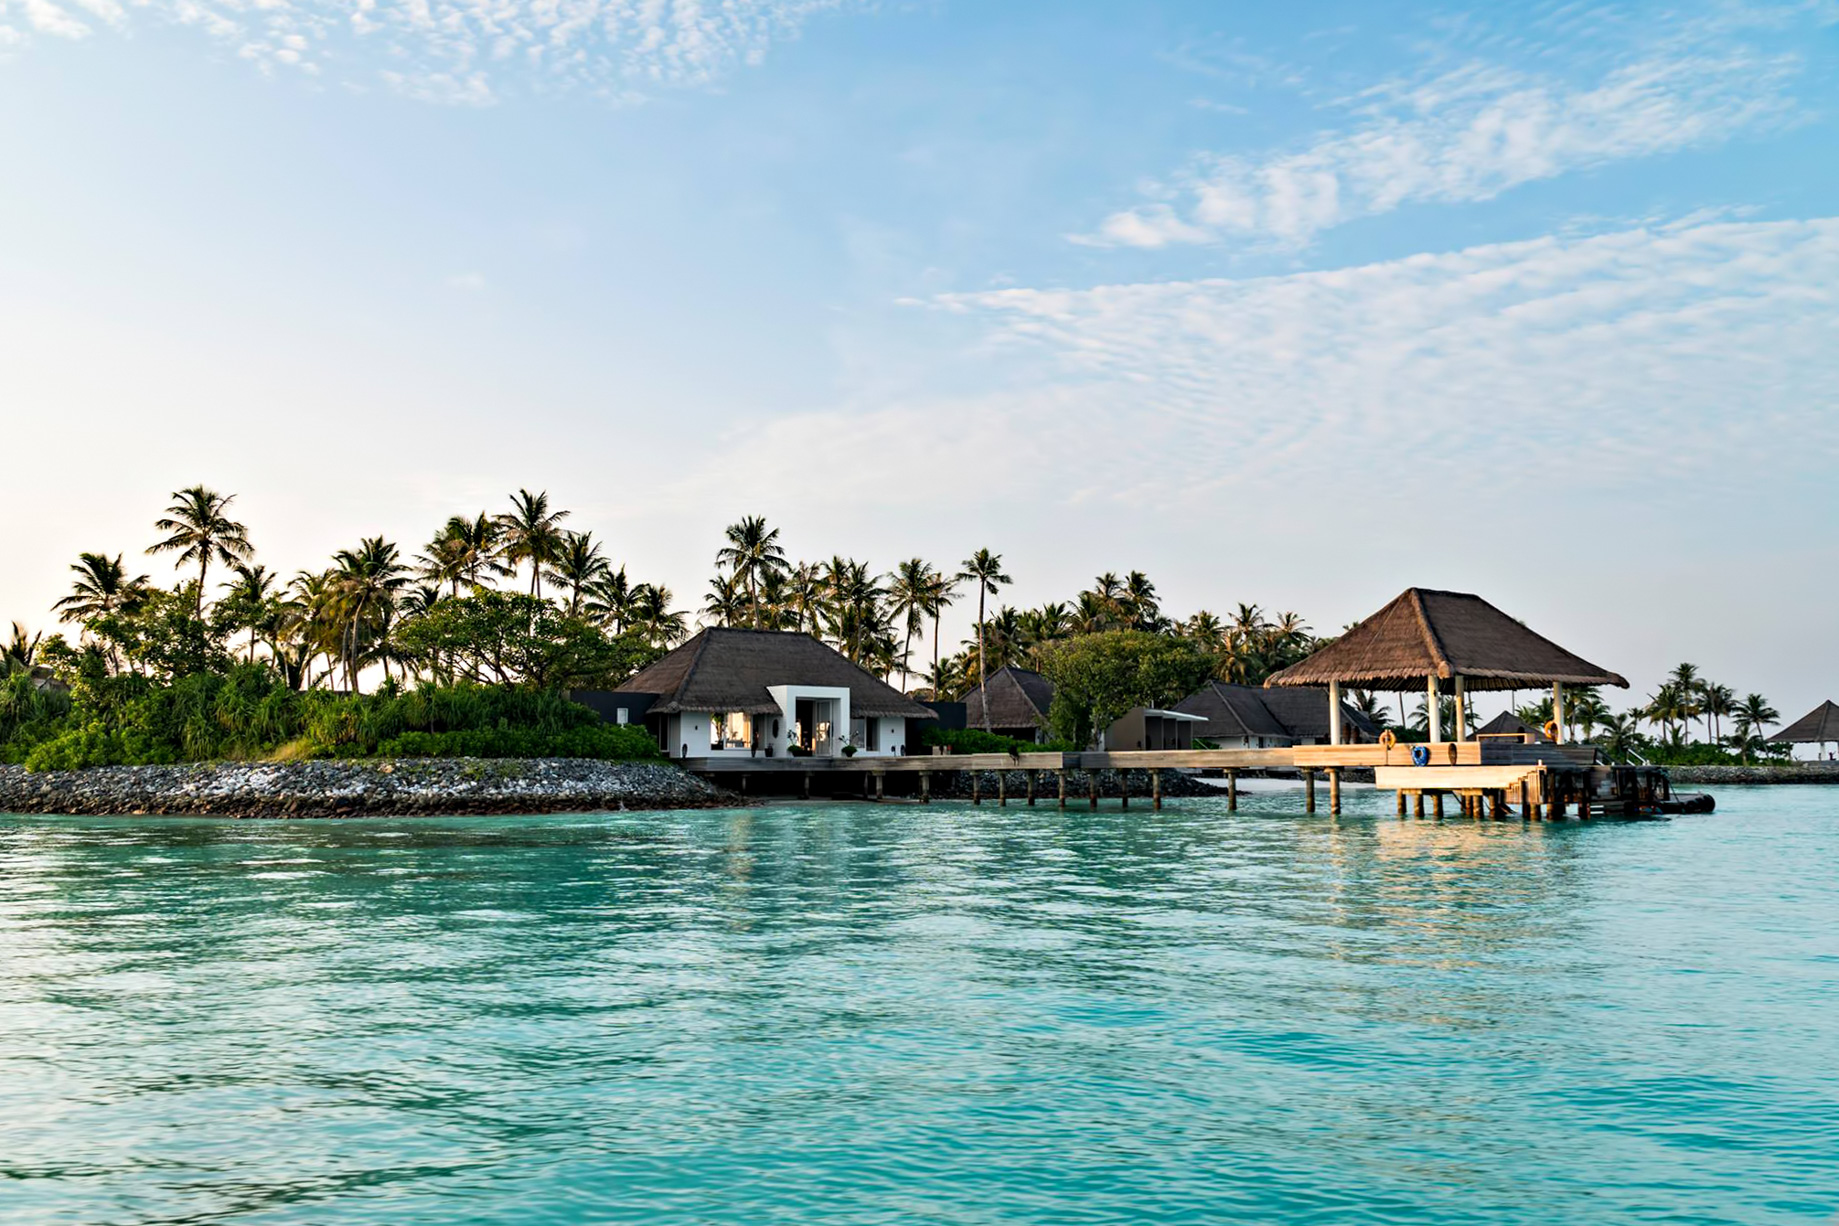 Cheval Blanc Randheli Luxury Resort - Noonu Atoll, Maldives - Private Island Boat Dock